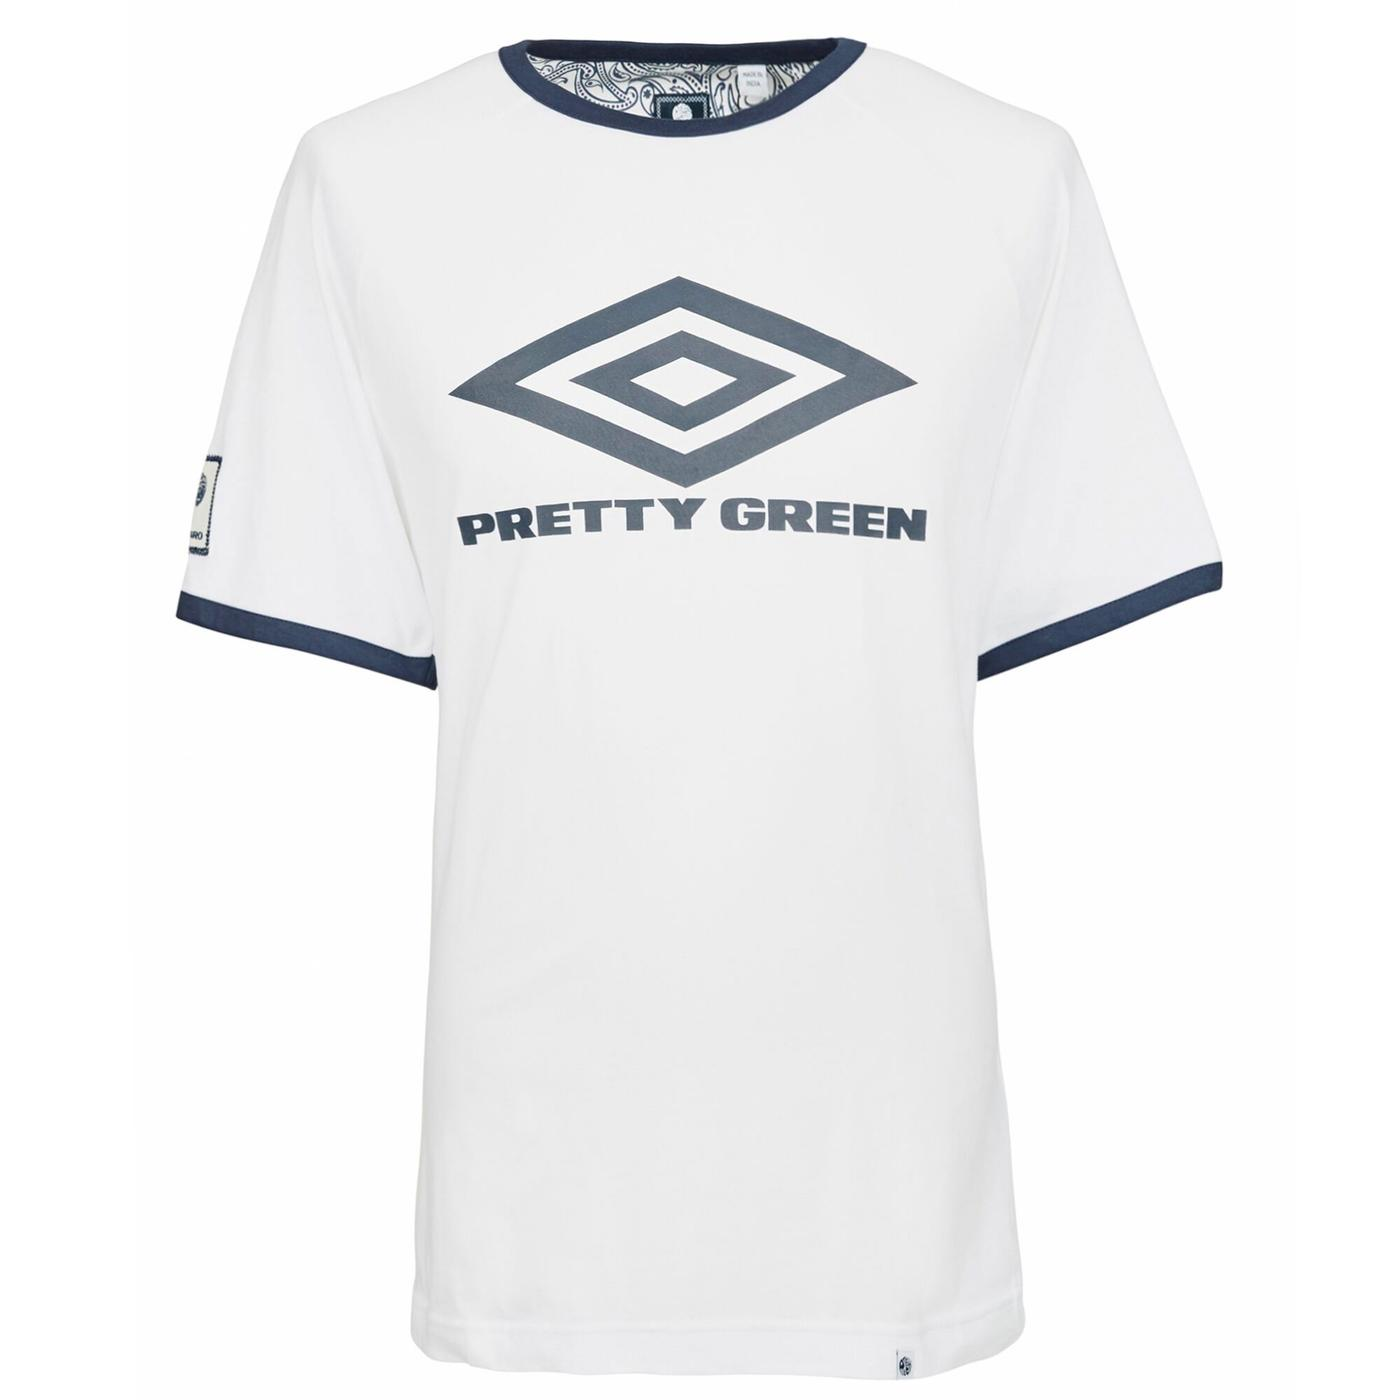 PRETTY GREEN X UMBRO Retro Indie Ringer Logo Tee